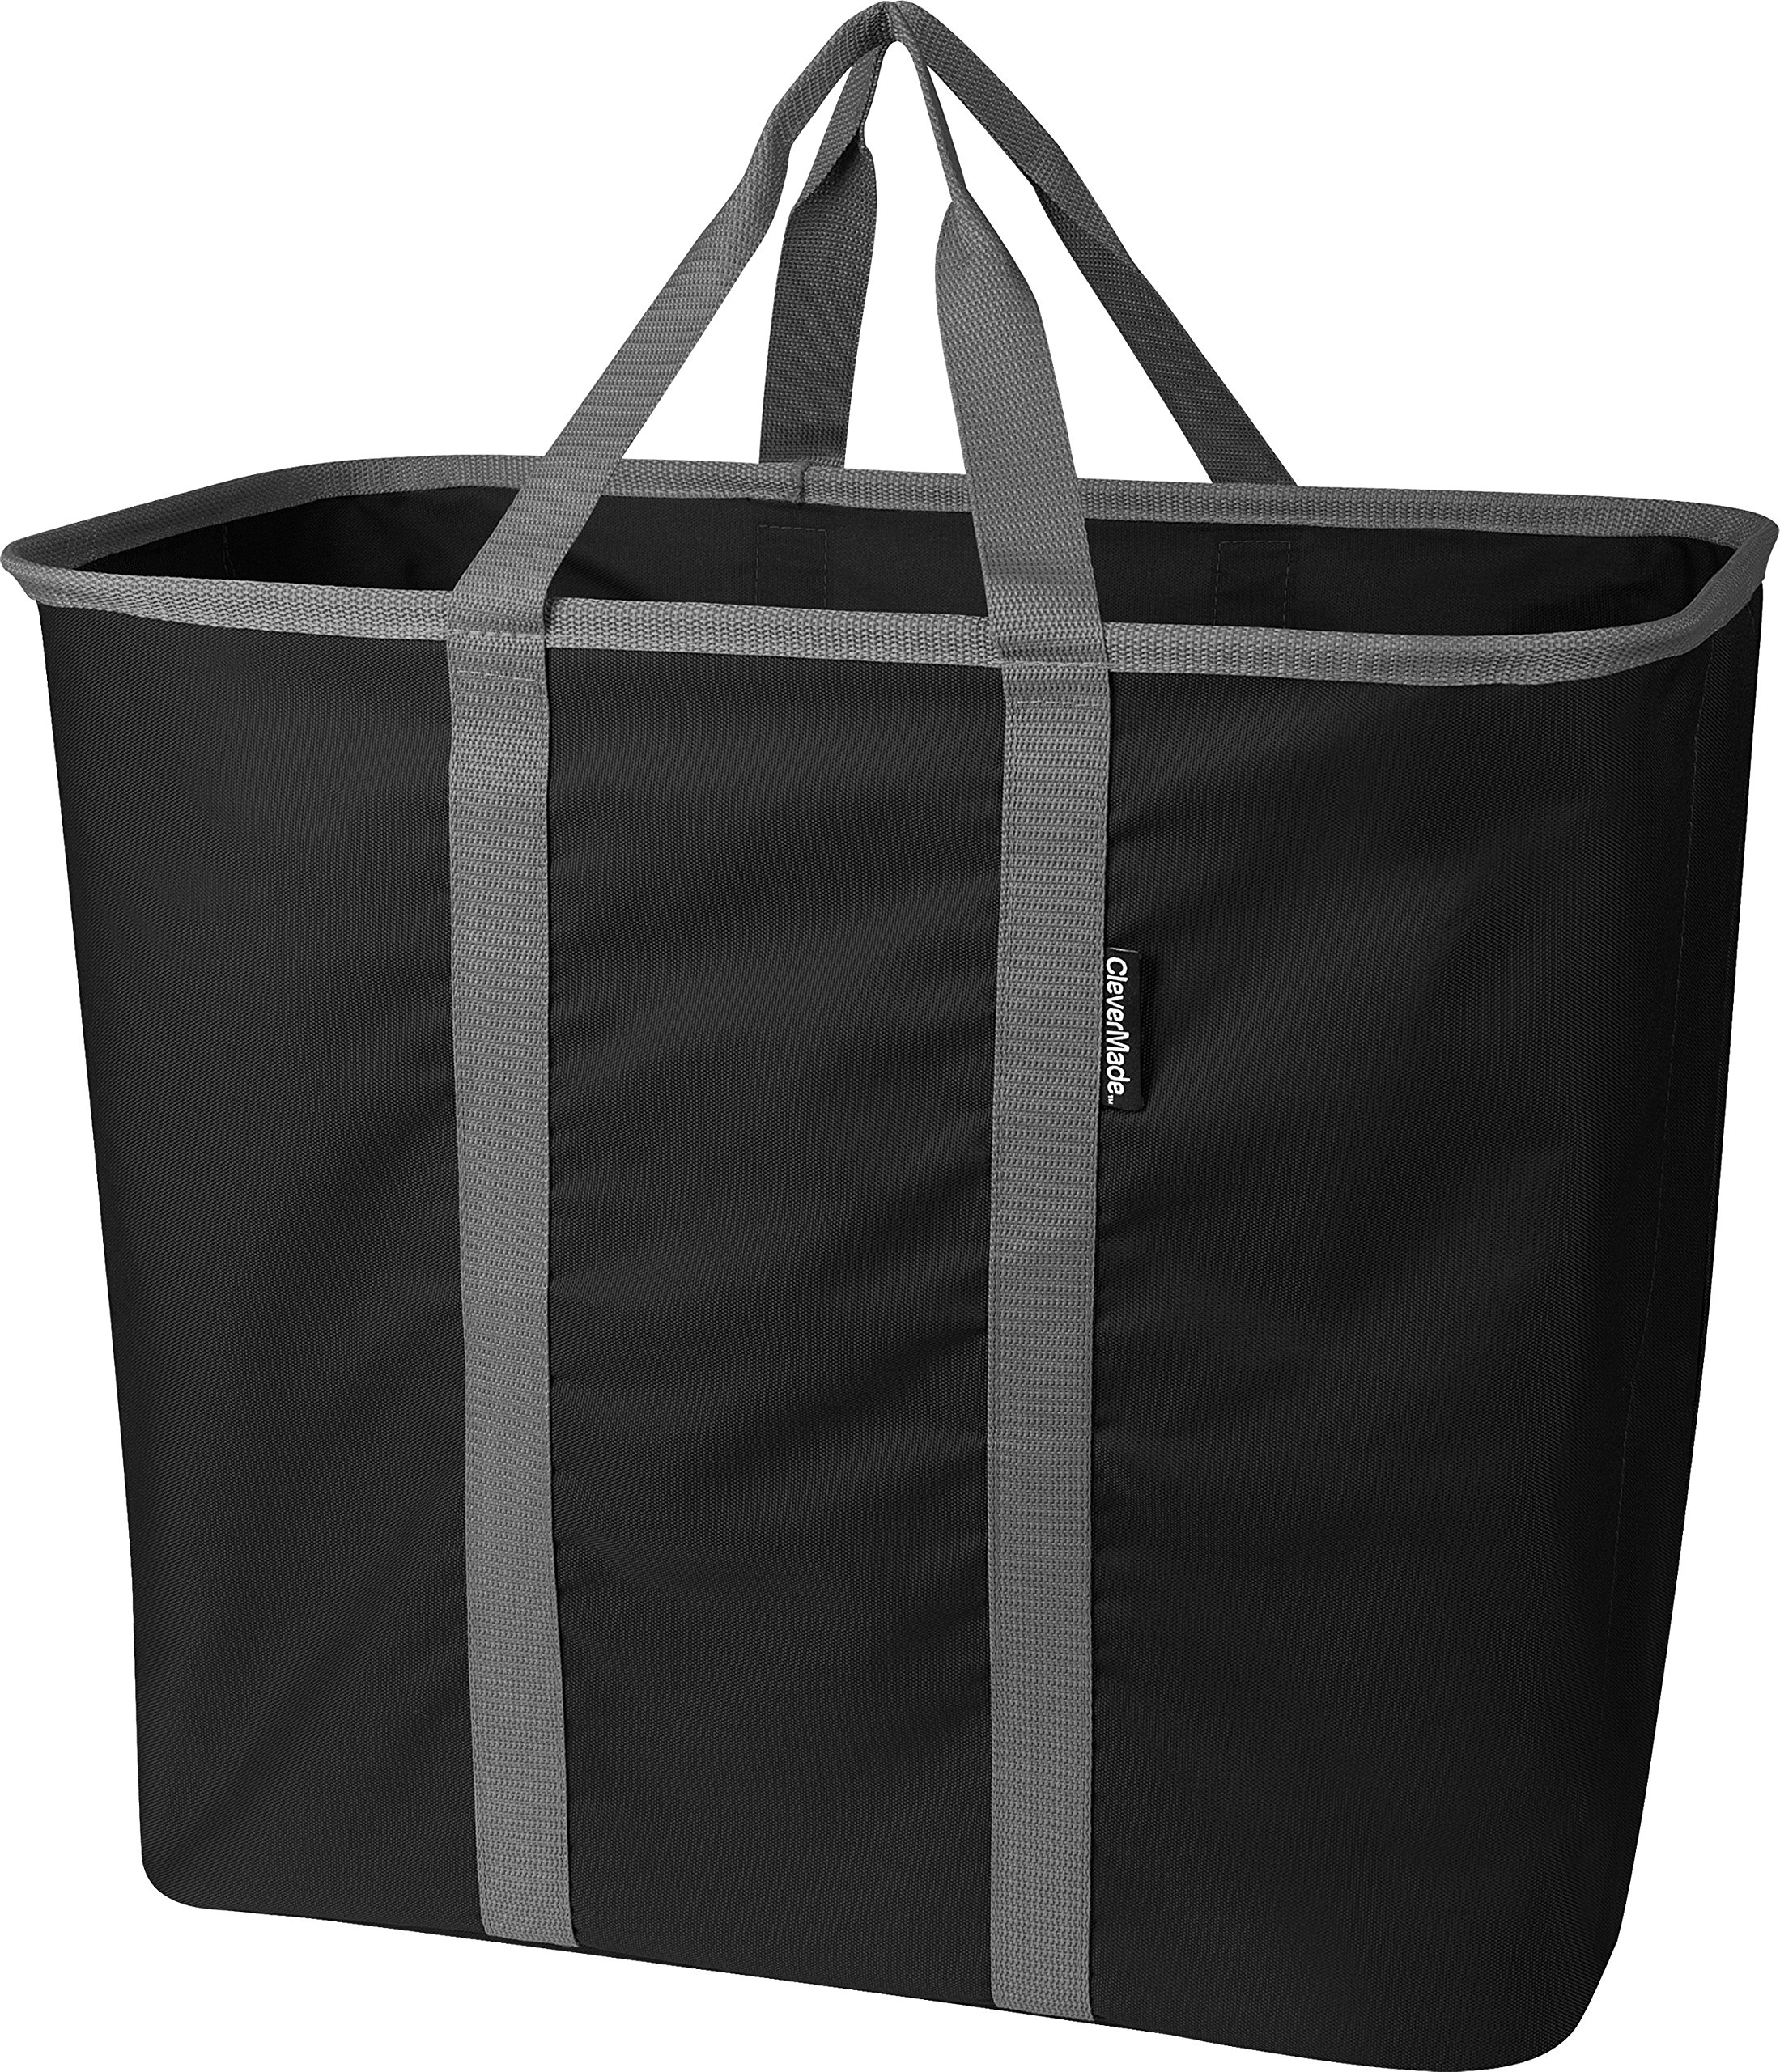 CleverMade SnapBasket LaundryCaddy/CarryAll XL Pop-Up Hamper, Collapsible Laundry Basket, and Extra-Large Tote Bag, Black/Charcoal by CleverMade